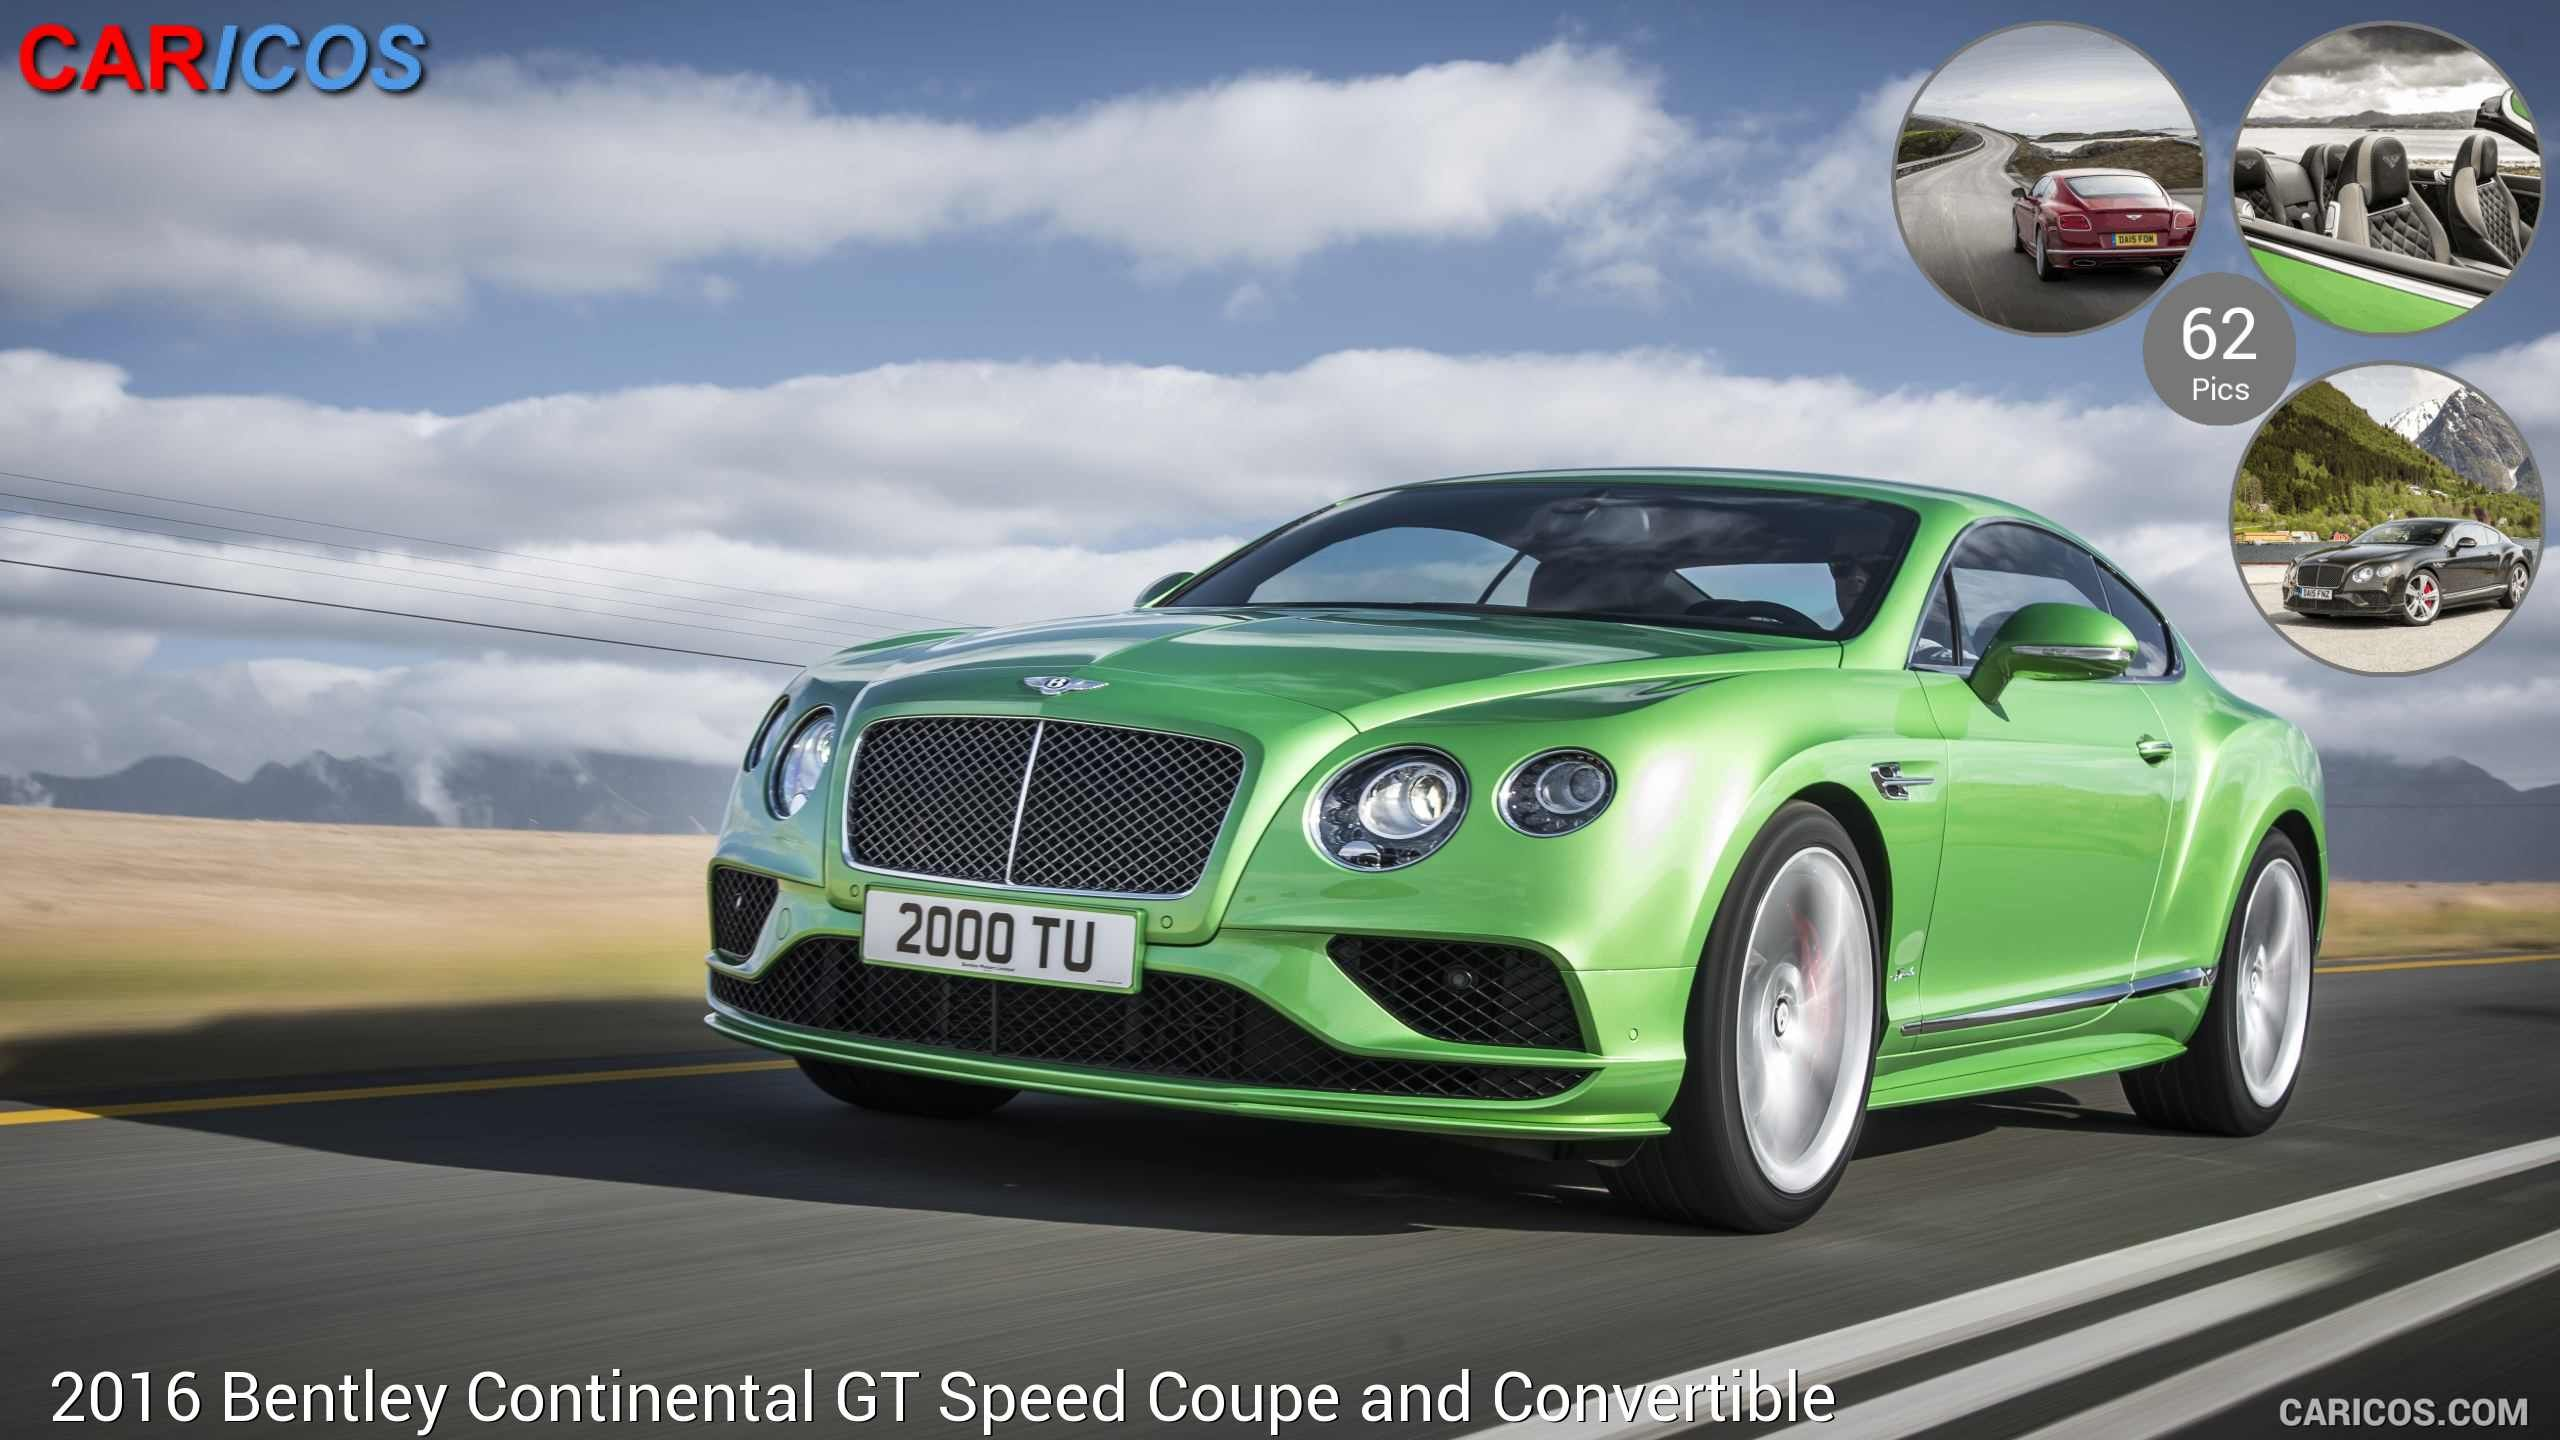 # CARICOS >> Bentley Continental GT Speed Coupe and Convertible (2016) >> LINK + 62 fotos